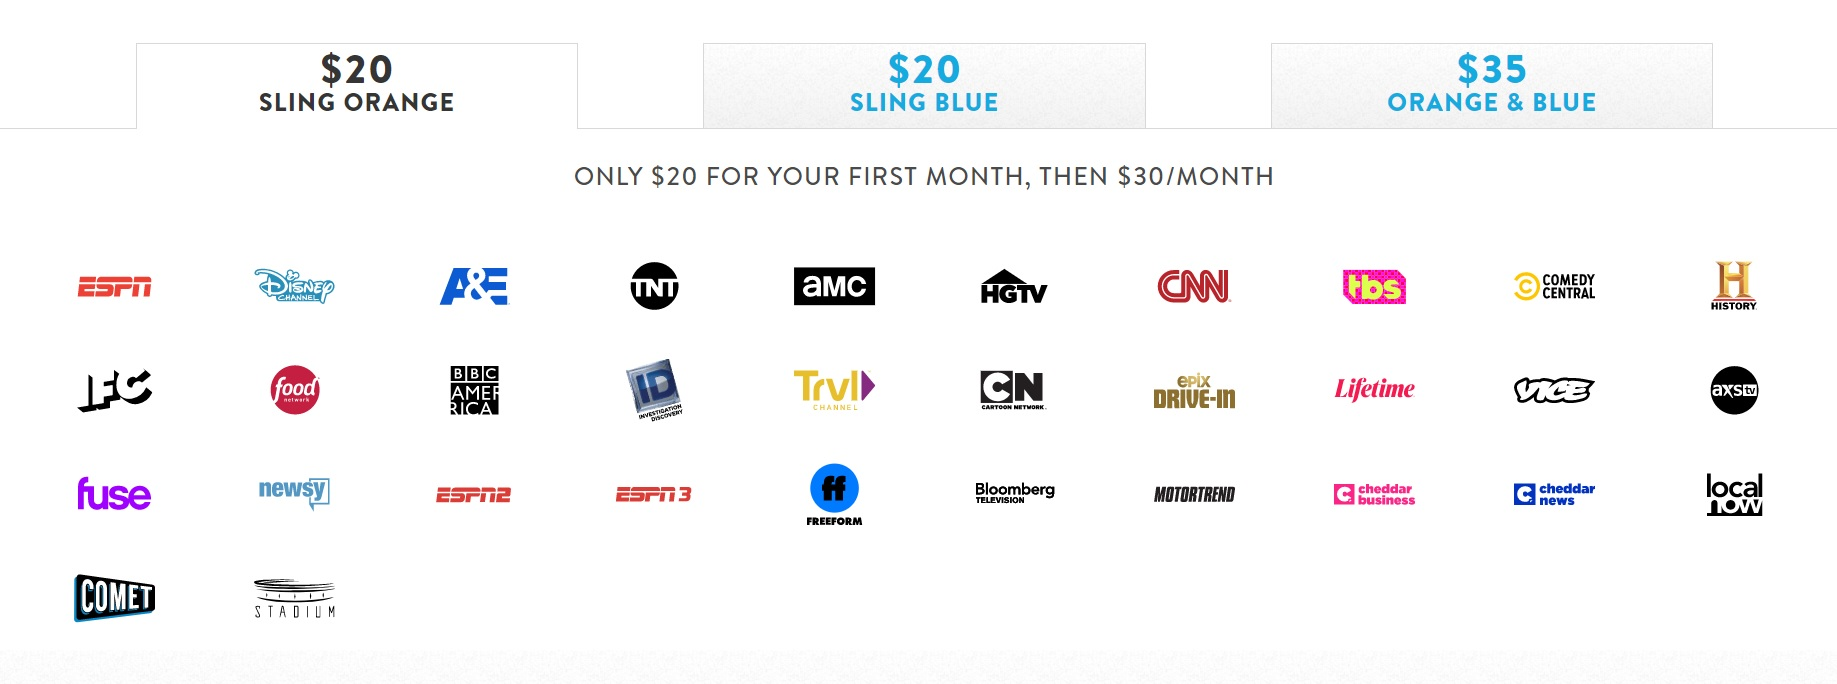 sling tv orange package channels